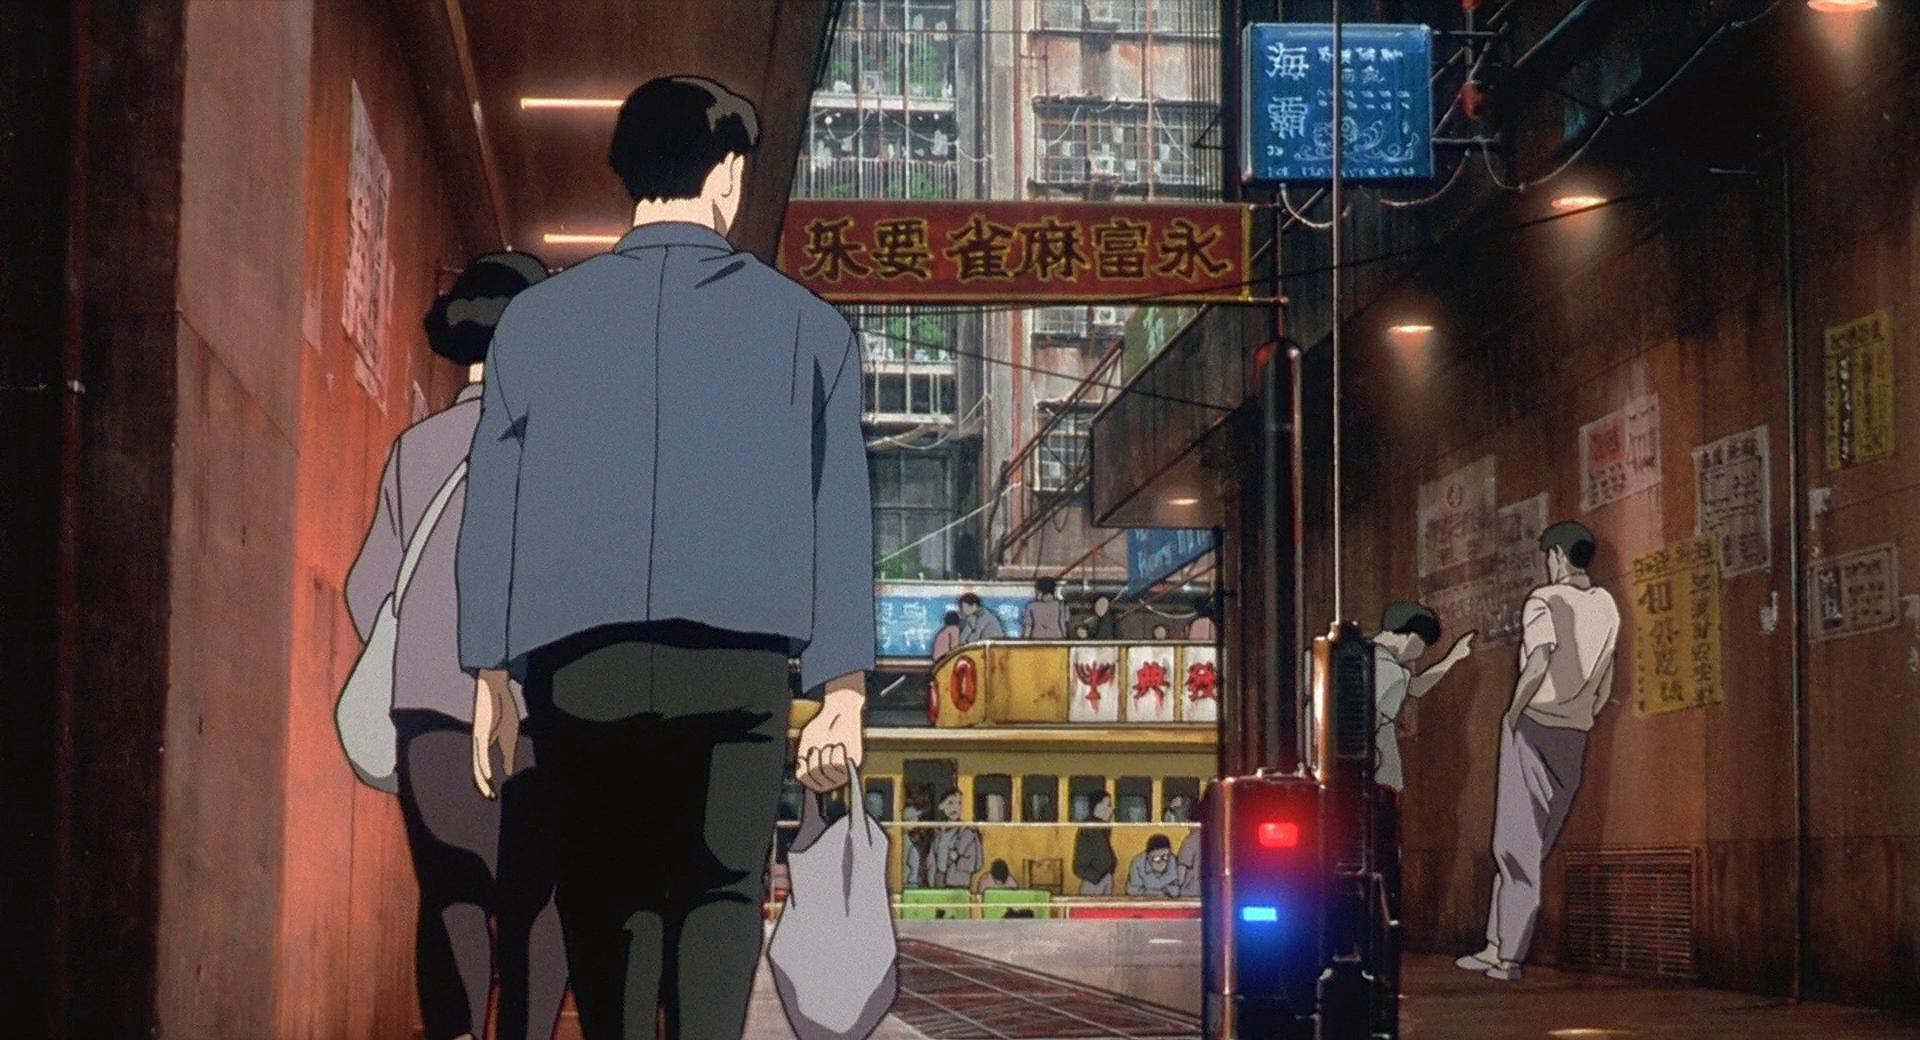 Case Study Hong Kong S Influence On Blade Runner Ghost In The Shell And Cyberpunk Cinema By Ray Zhu Medium